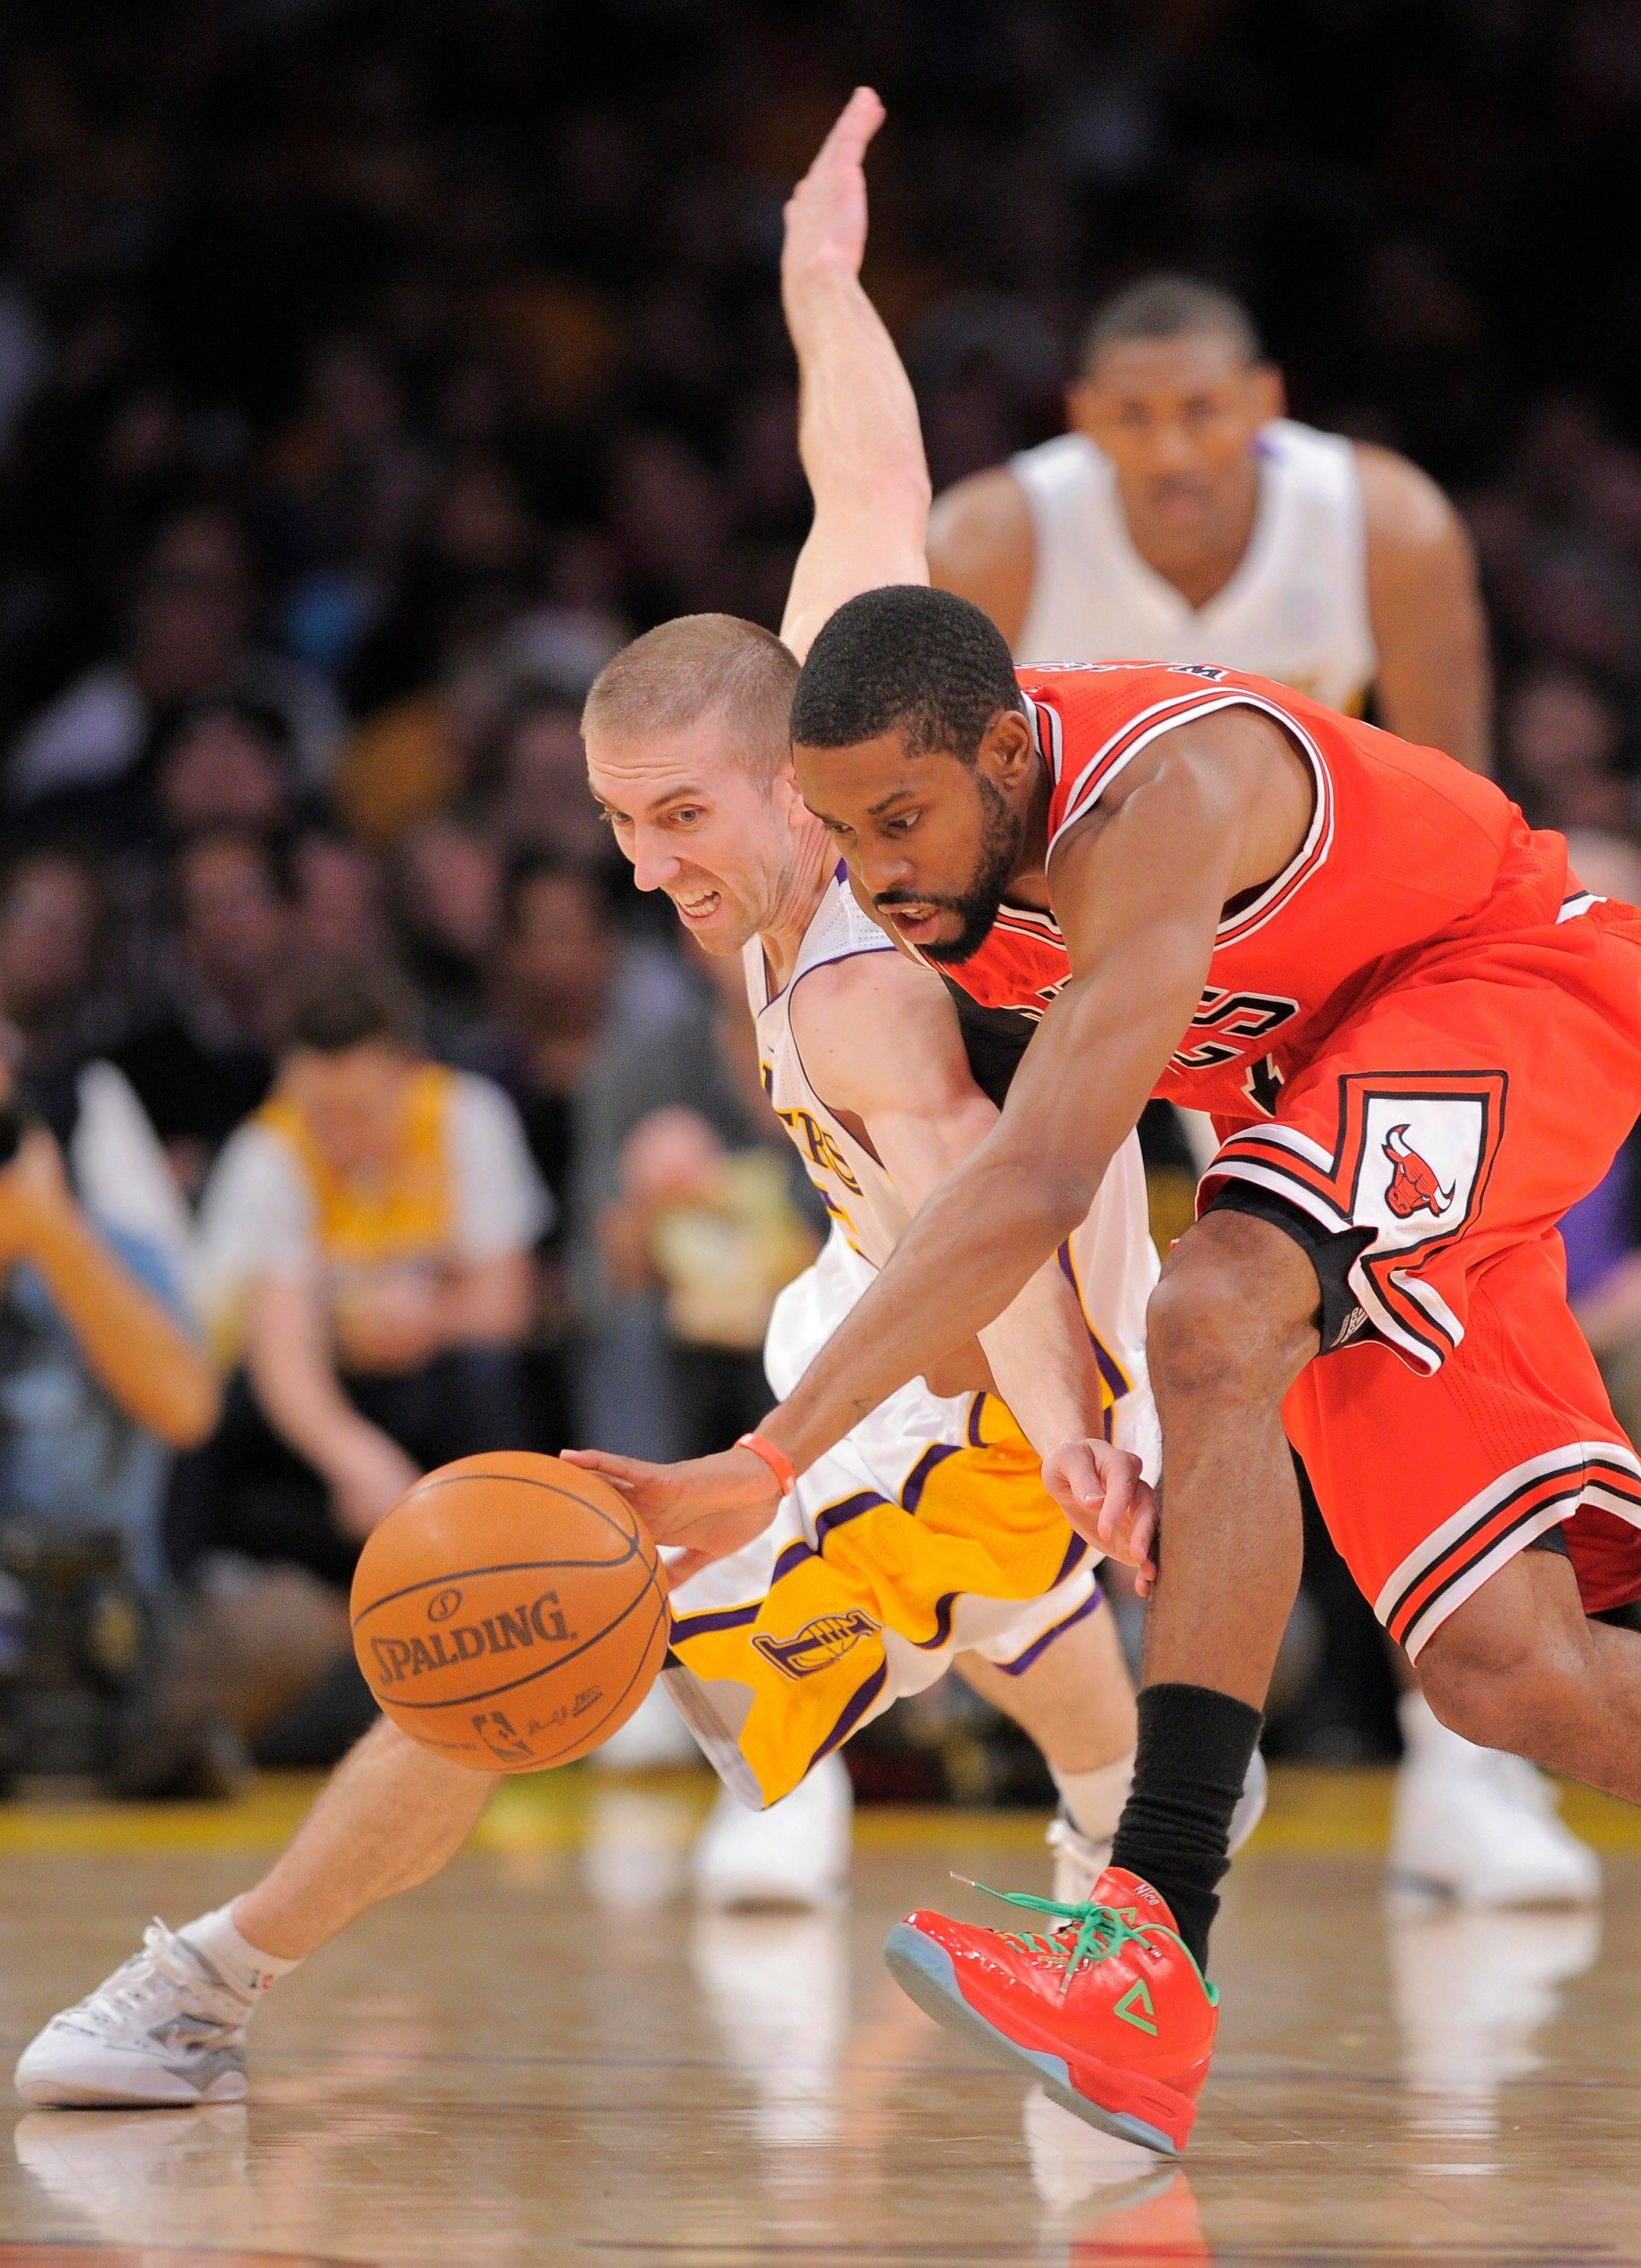 Los Angeles Lakers point guard Steve Blake, left, and Chicago Bulls point guard C.J. Watson go after a loose ball during the first half Sunday in Los Angeles. The Bulls won 88-87.